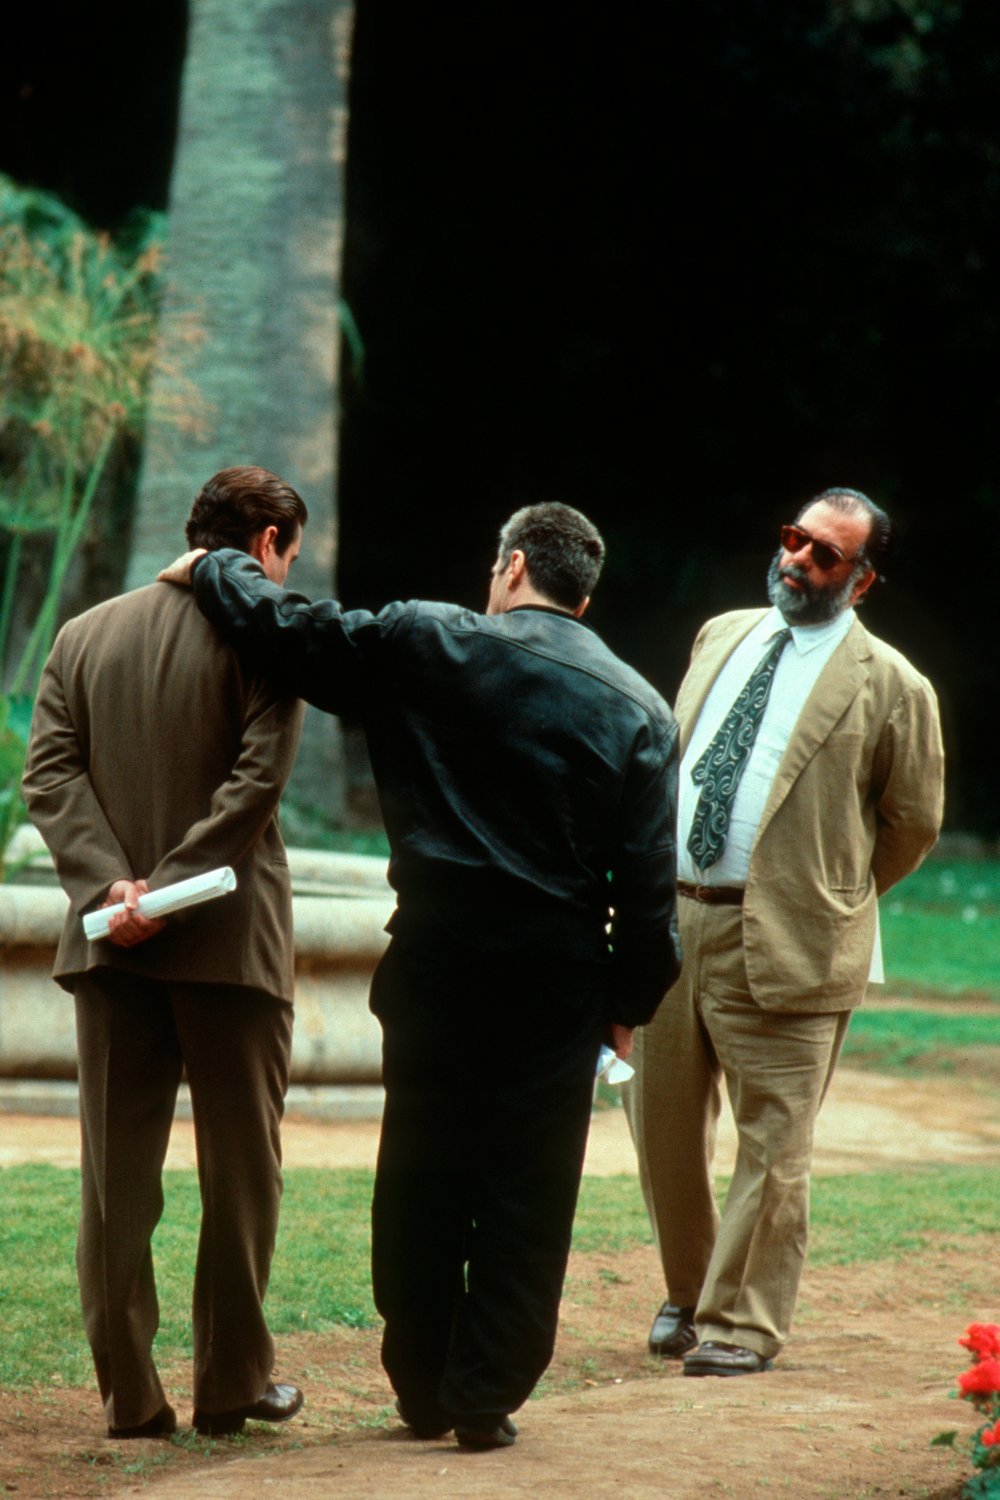 godfather-part-3-the-1990-001-al-pacino-andy-garcia-francis-ford-coppola-00n-mty.jpg